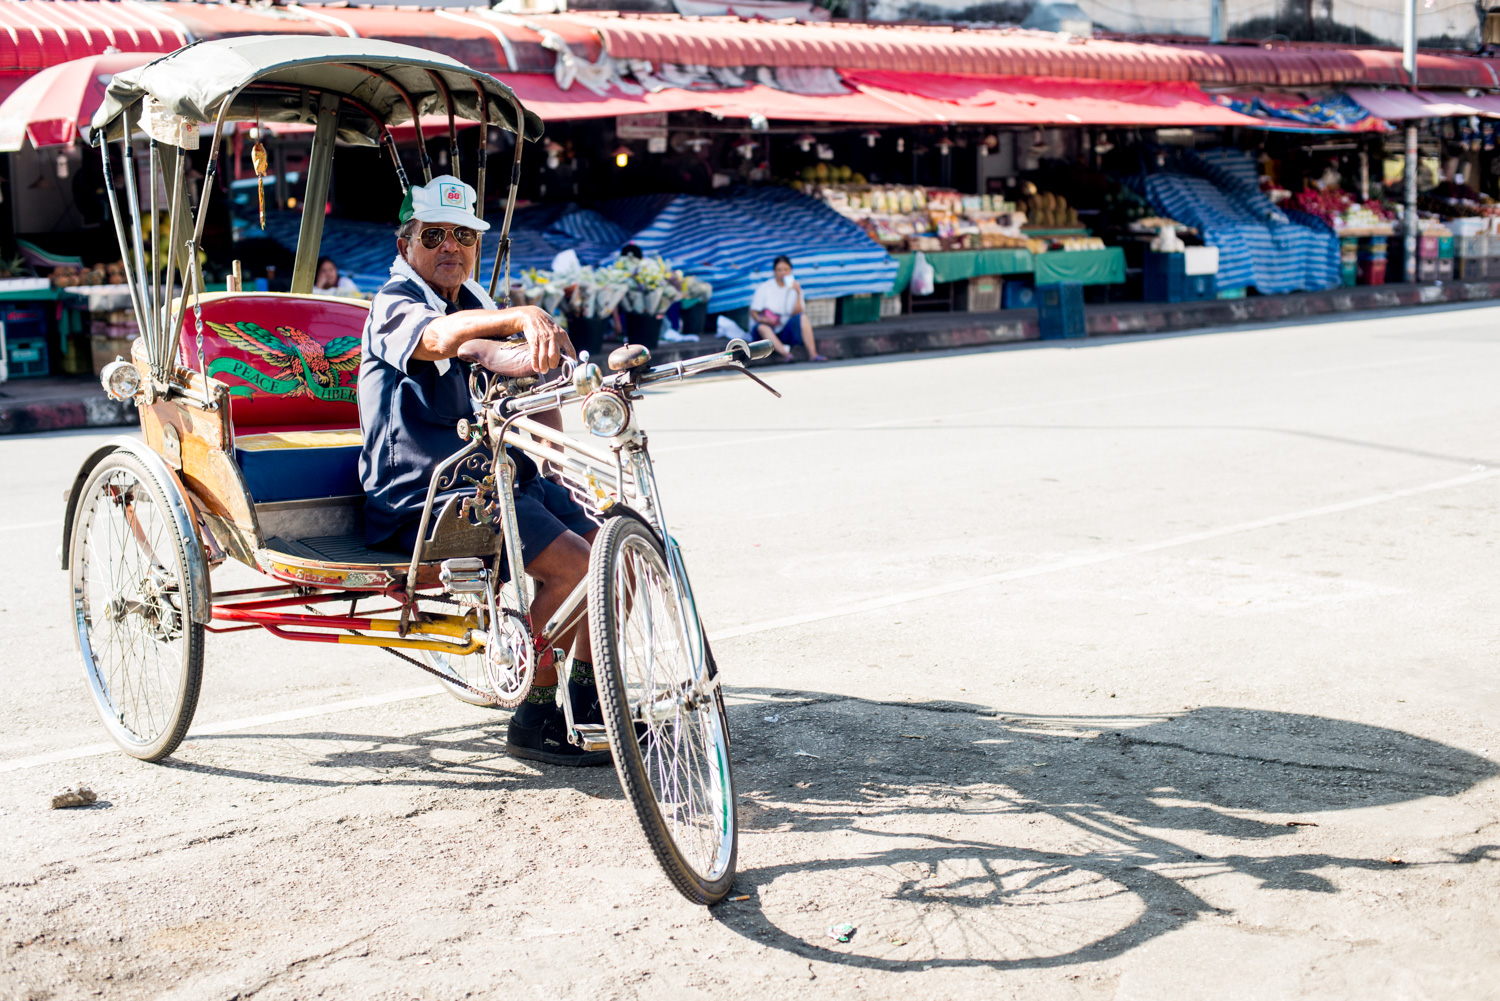 tricycle taxi and rider at a Thai market by Kevin Landwer-Johan (copyright) - 7 Tips for Avoiding a Distracting Background in Street Photography